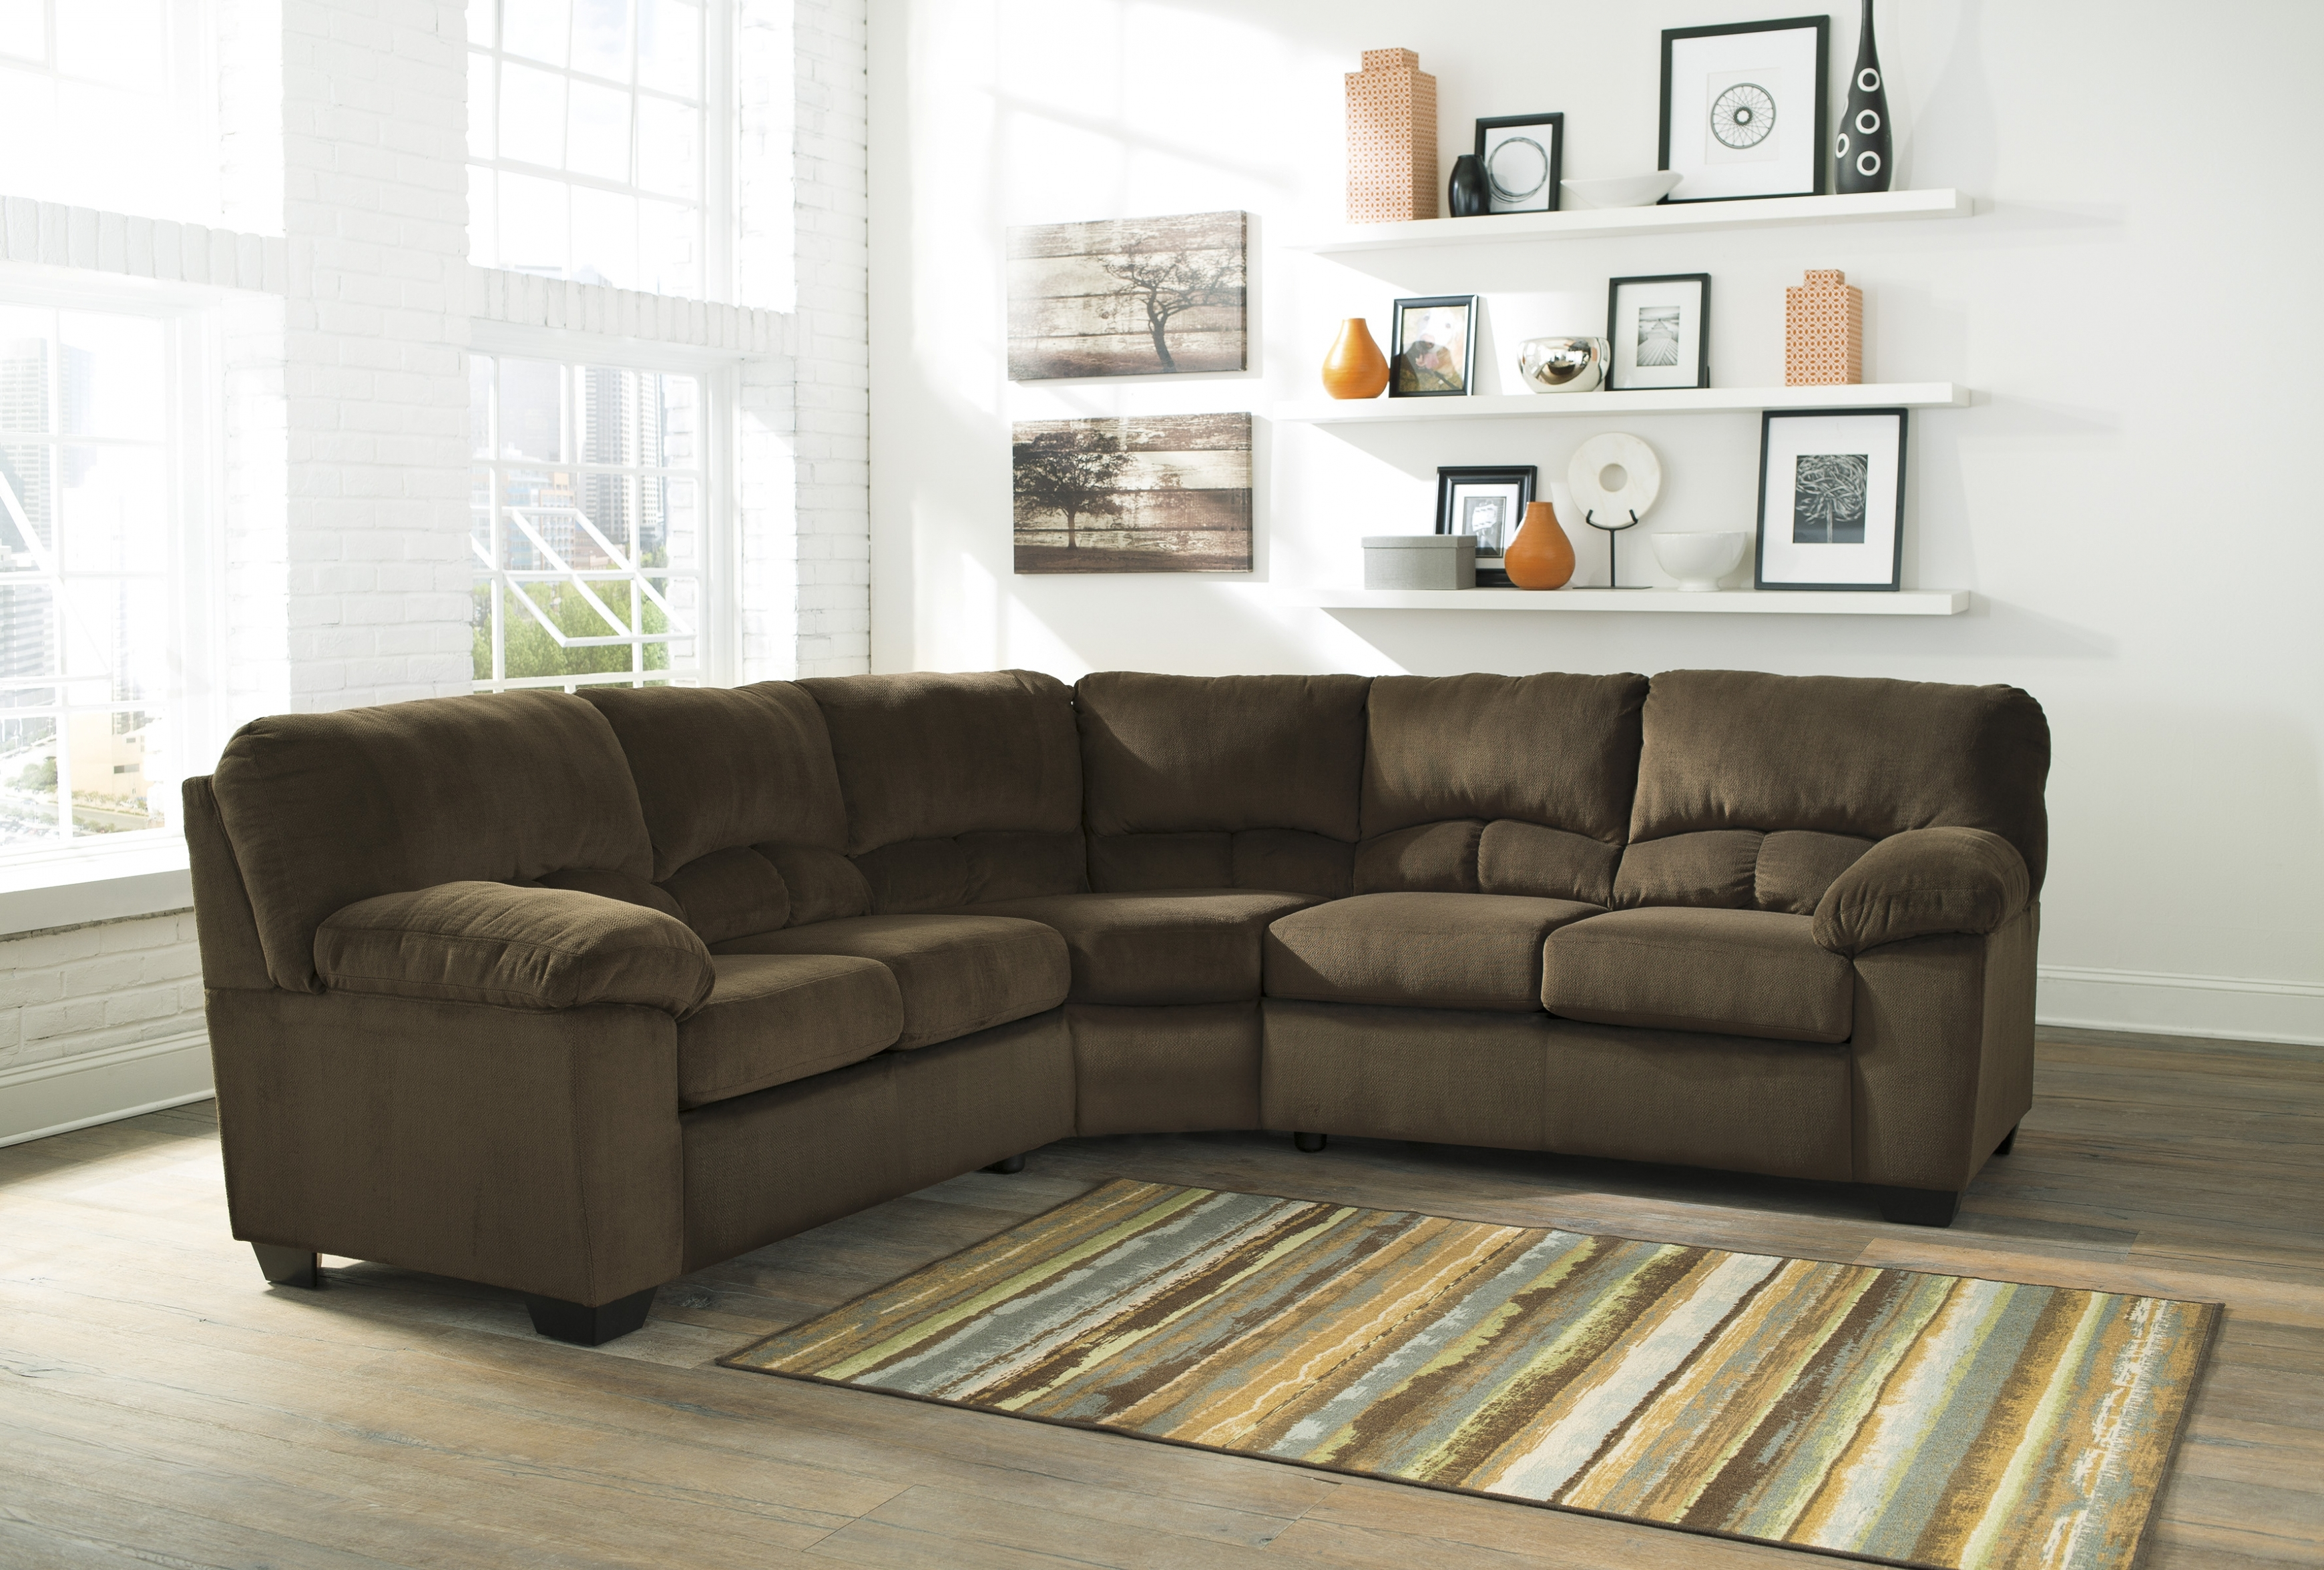 Sectional Sofas At Havertys Intended For 2019 Sofa: Sofas : Fabulous Black Sectional Sofa Havertys Sectional (View 20 of 20)